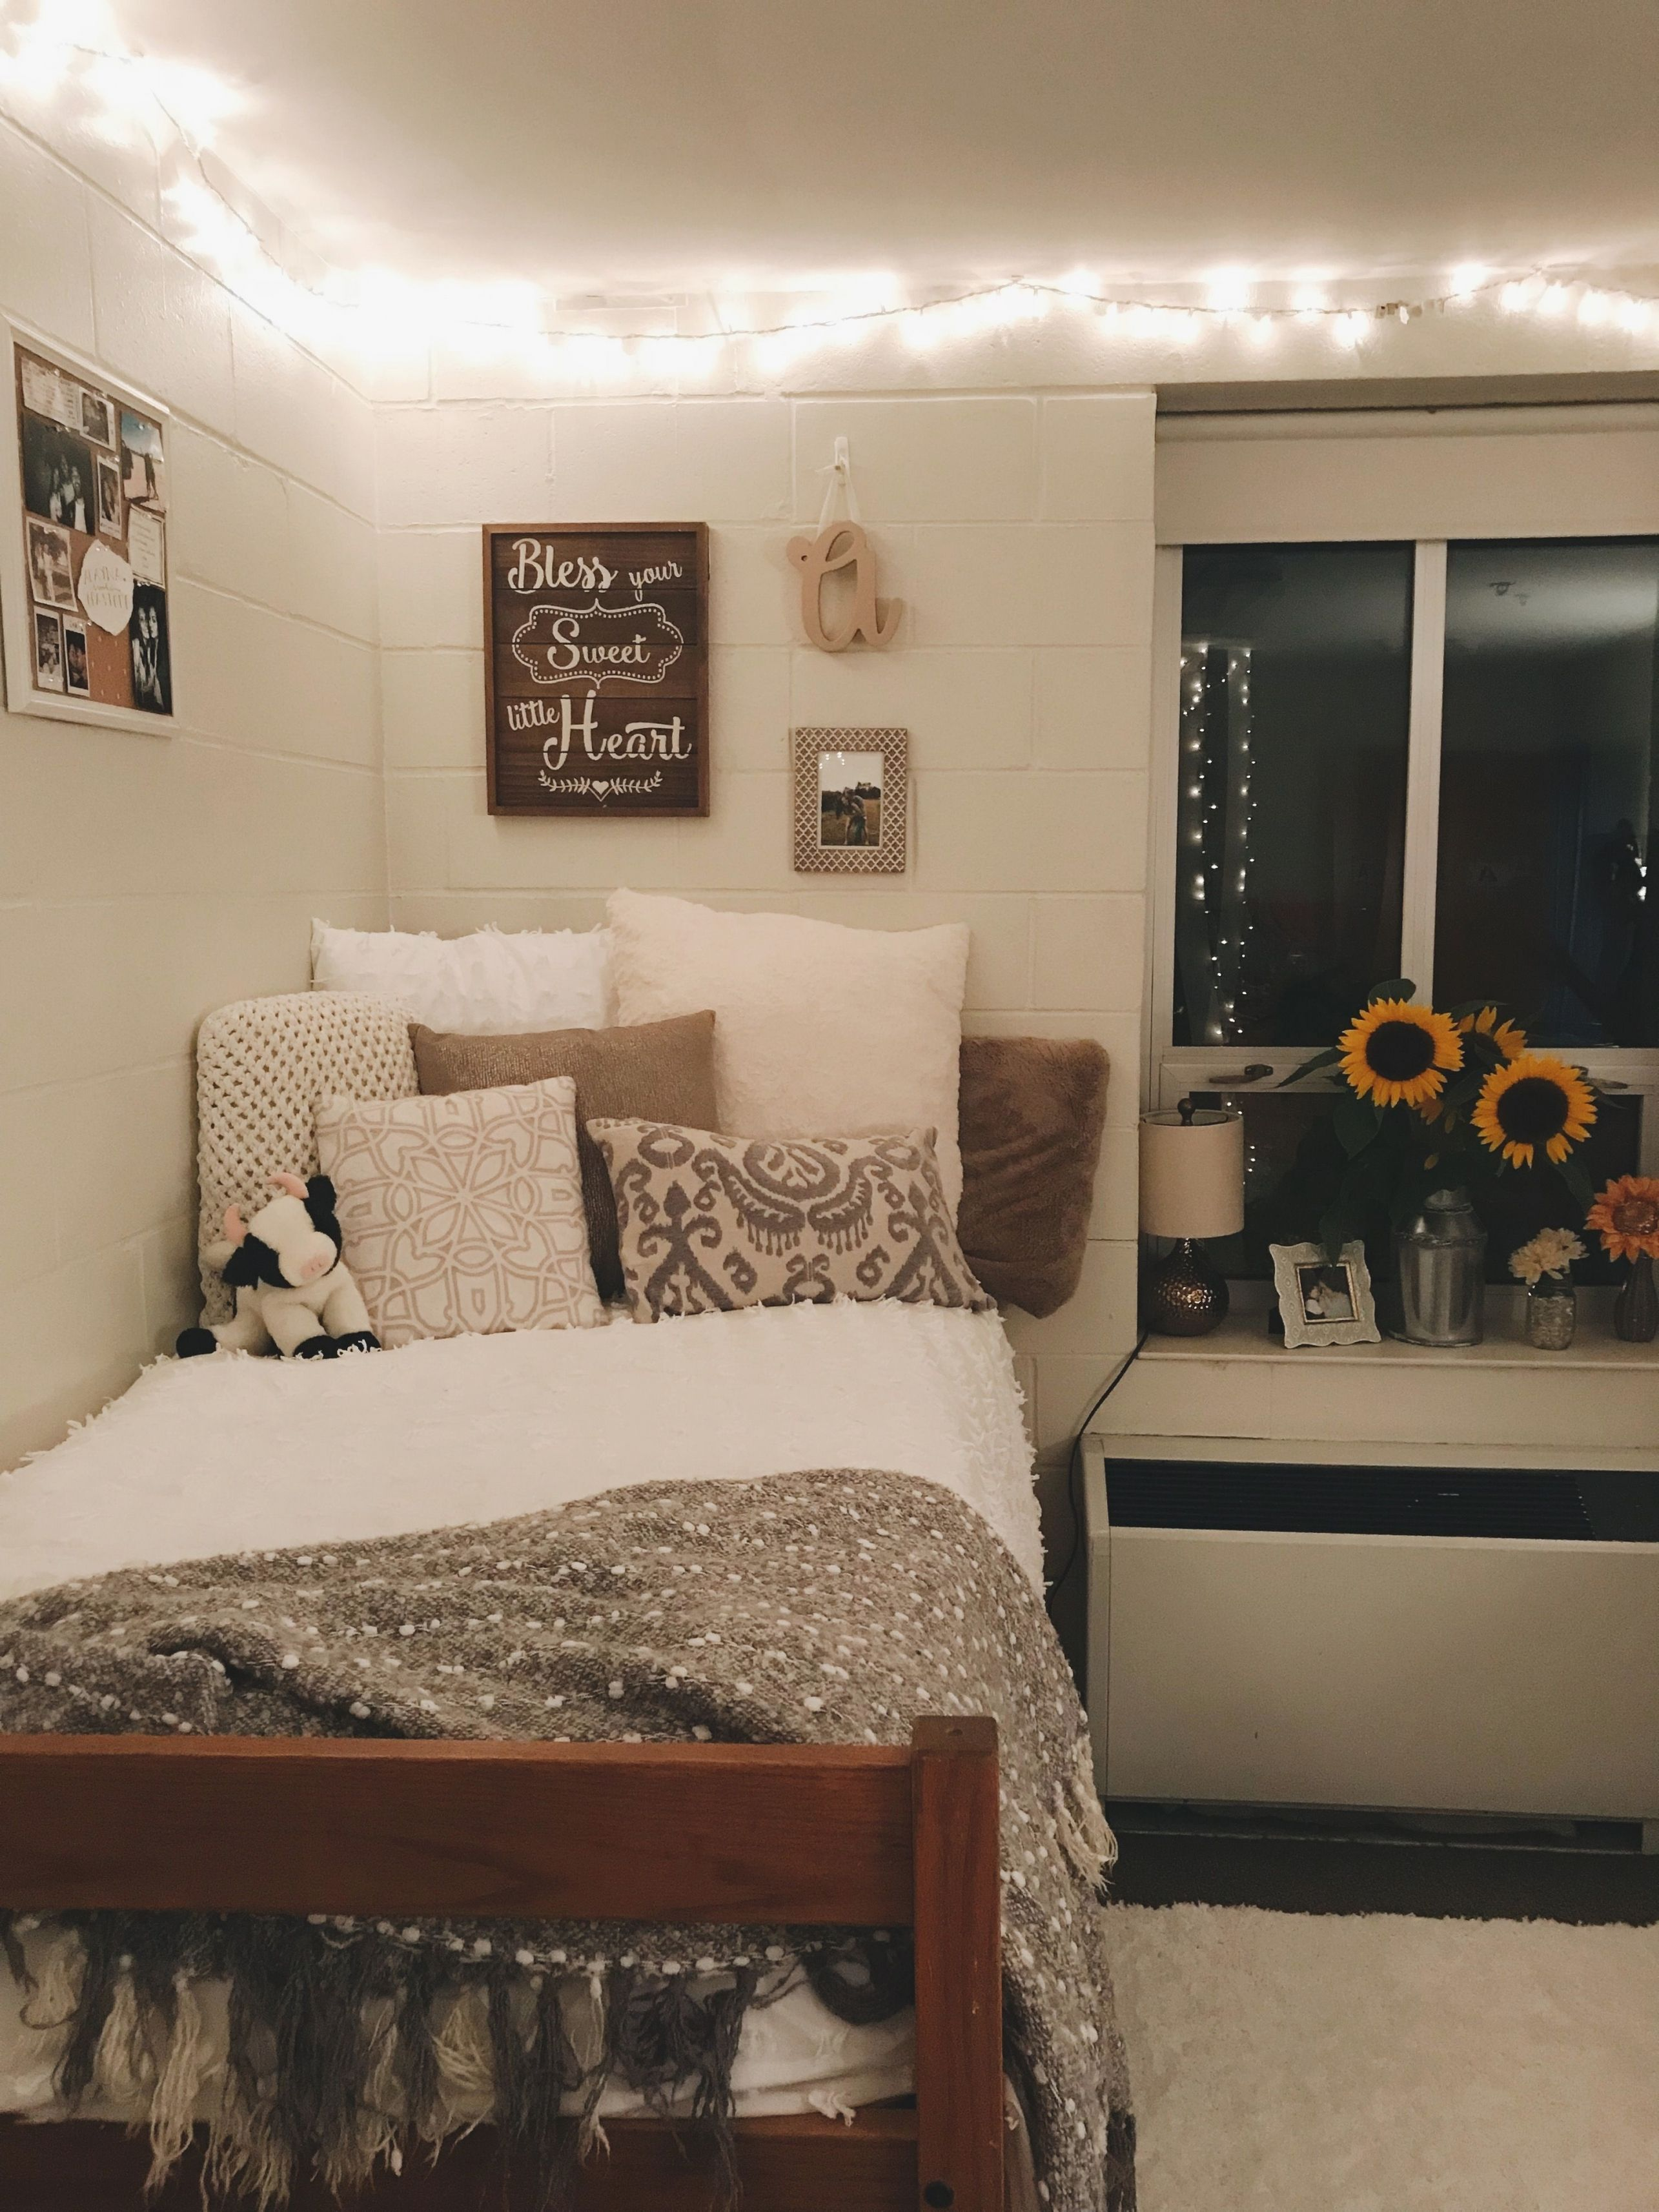 20 Affordable Dorm Room Ideas Private Beautiful Dorm Room College Dorm Room Decor Dorm Room Designs